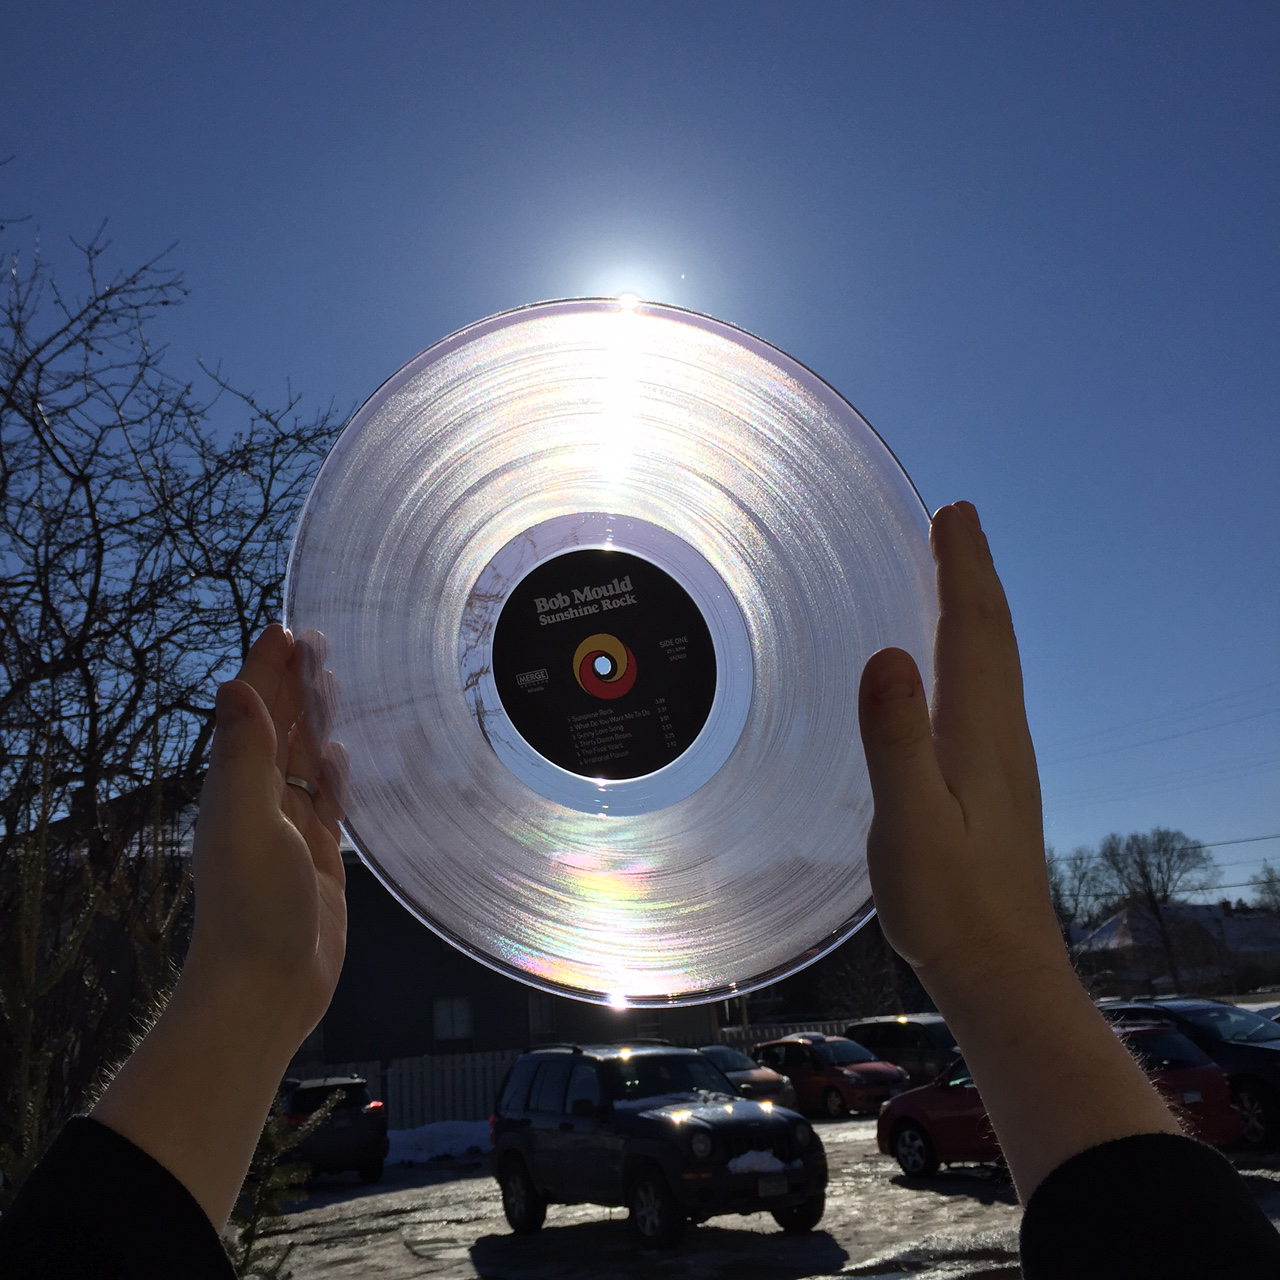 Bob Mould's Sunshine Rock on Clear vinyl available now!